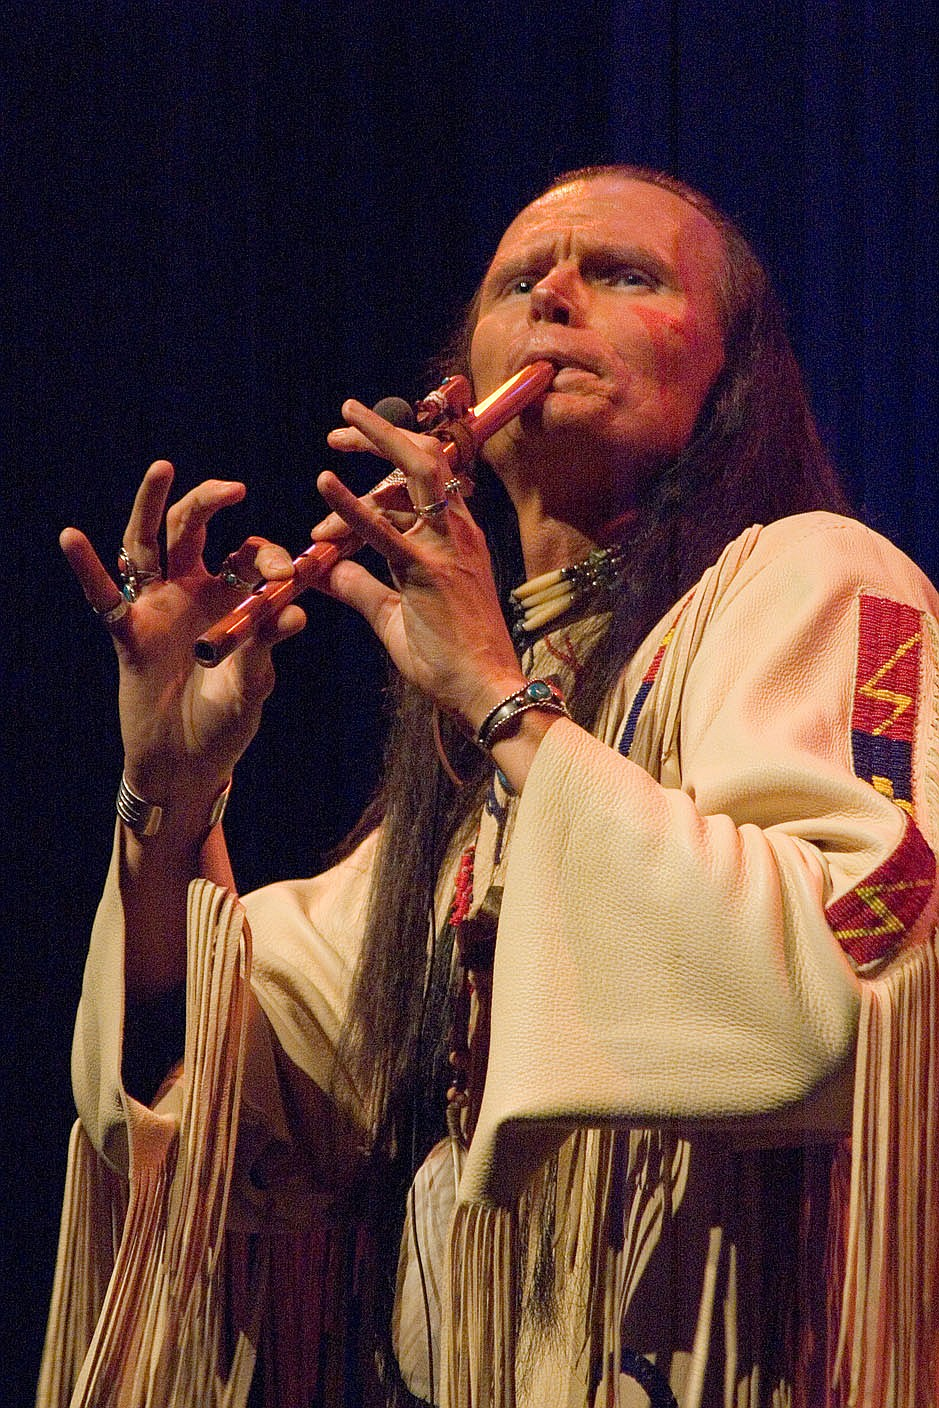 John Two-Hawks Mother's Day Concert — With Native American flutist John Two-Hawks, 2 p.m. May 9, via Facebook Live. Free. johntwohawks.com.